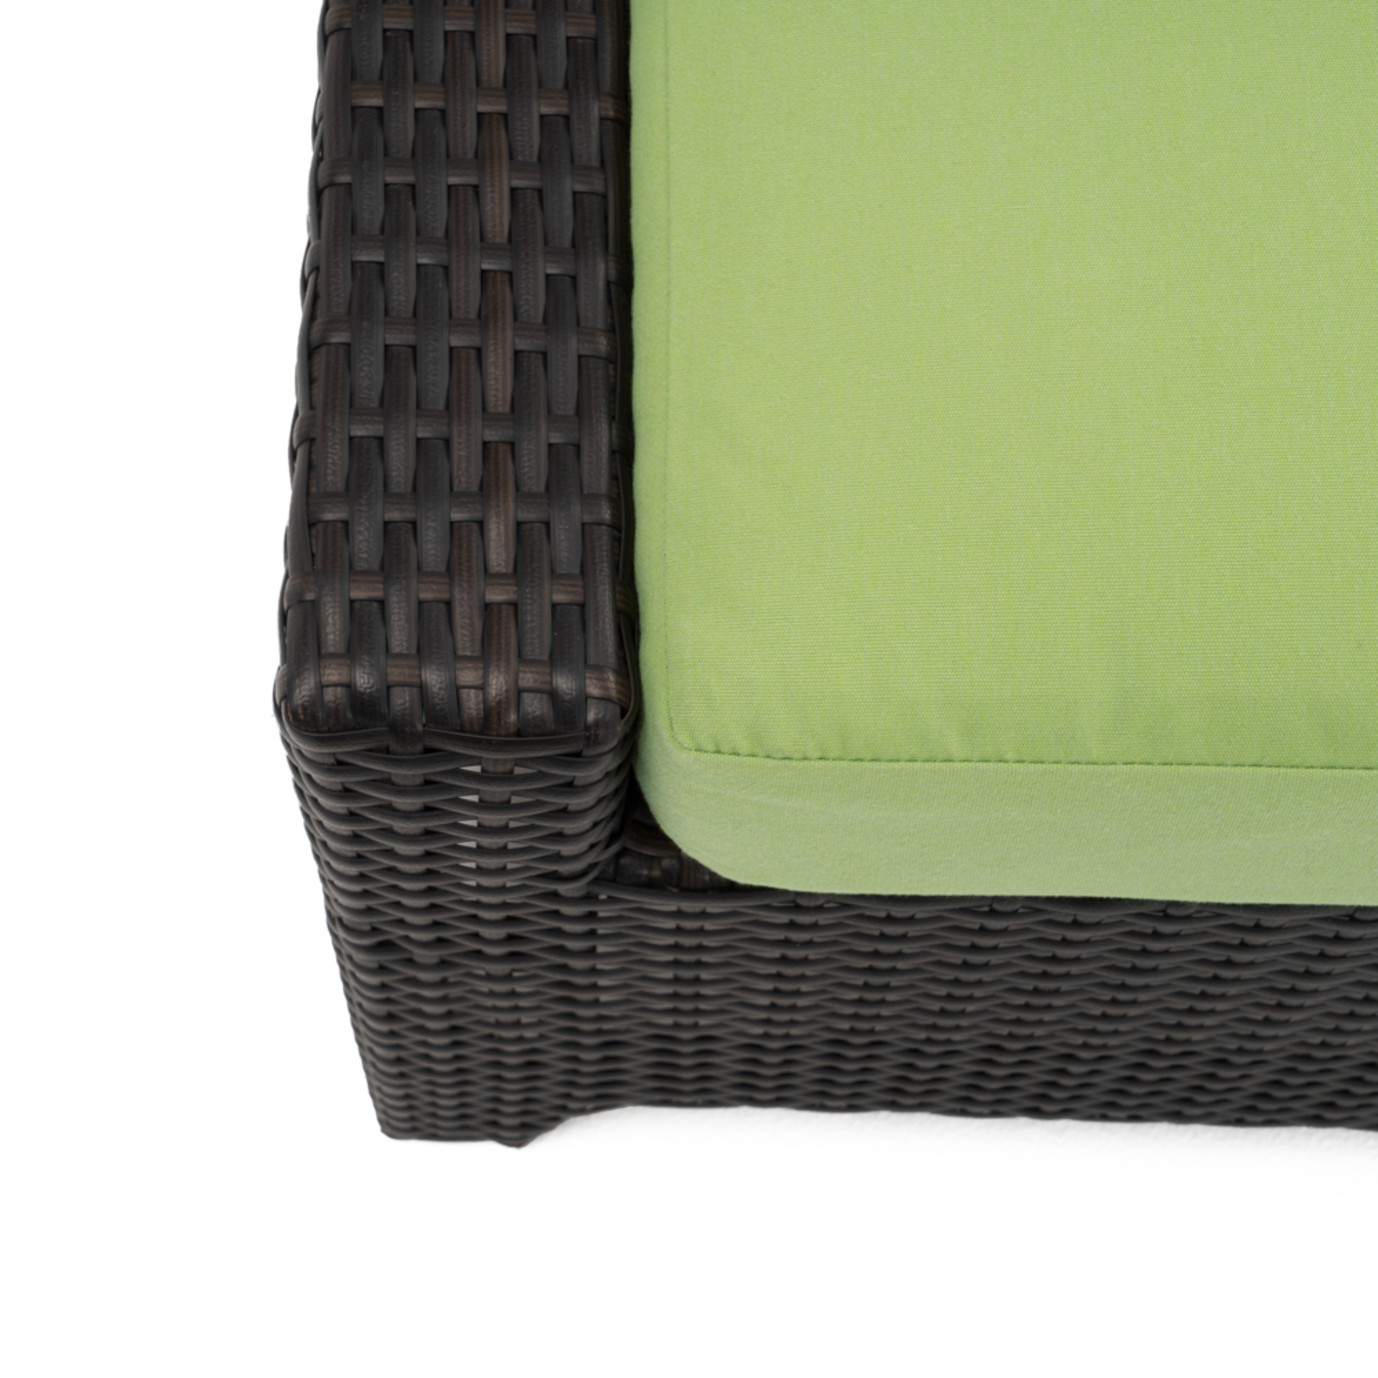 Deco™ 8 Piece Sofa and Club Chair Set - Ginkgo Green